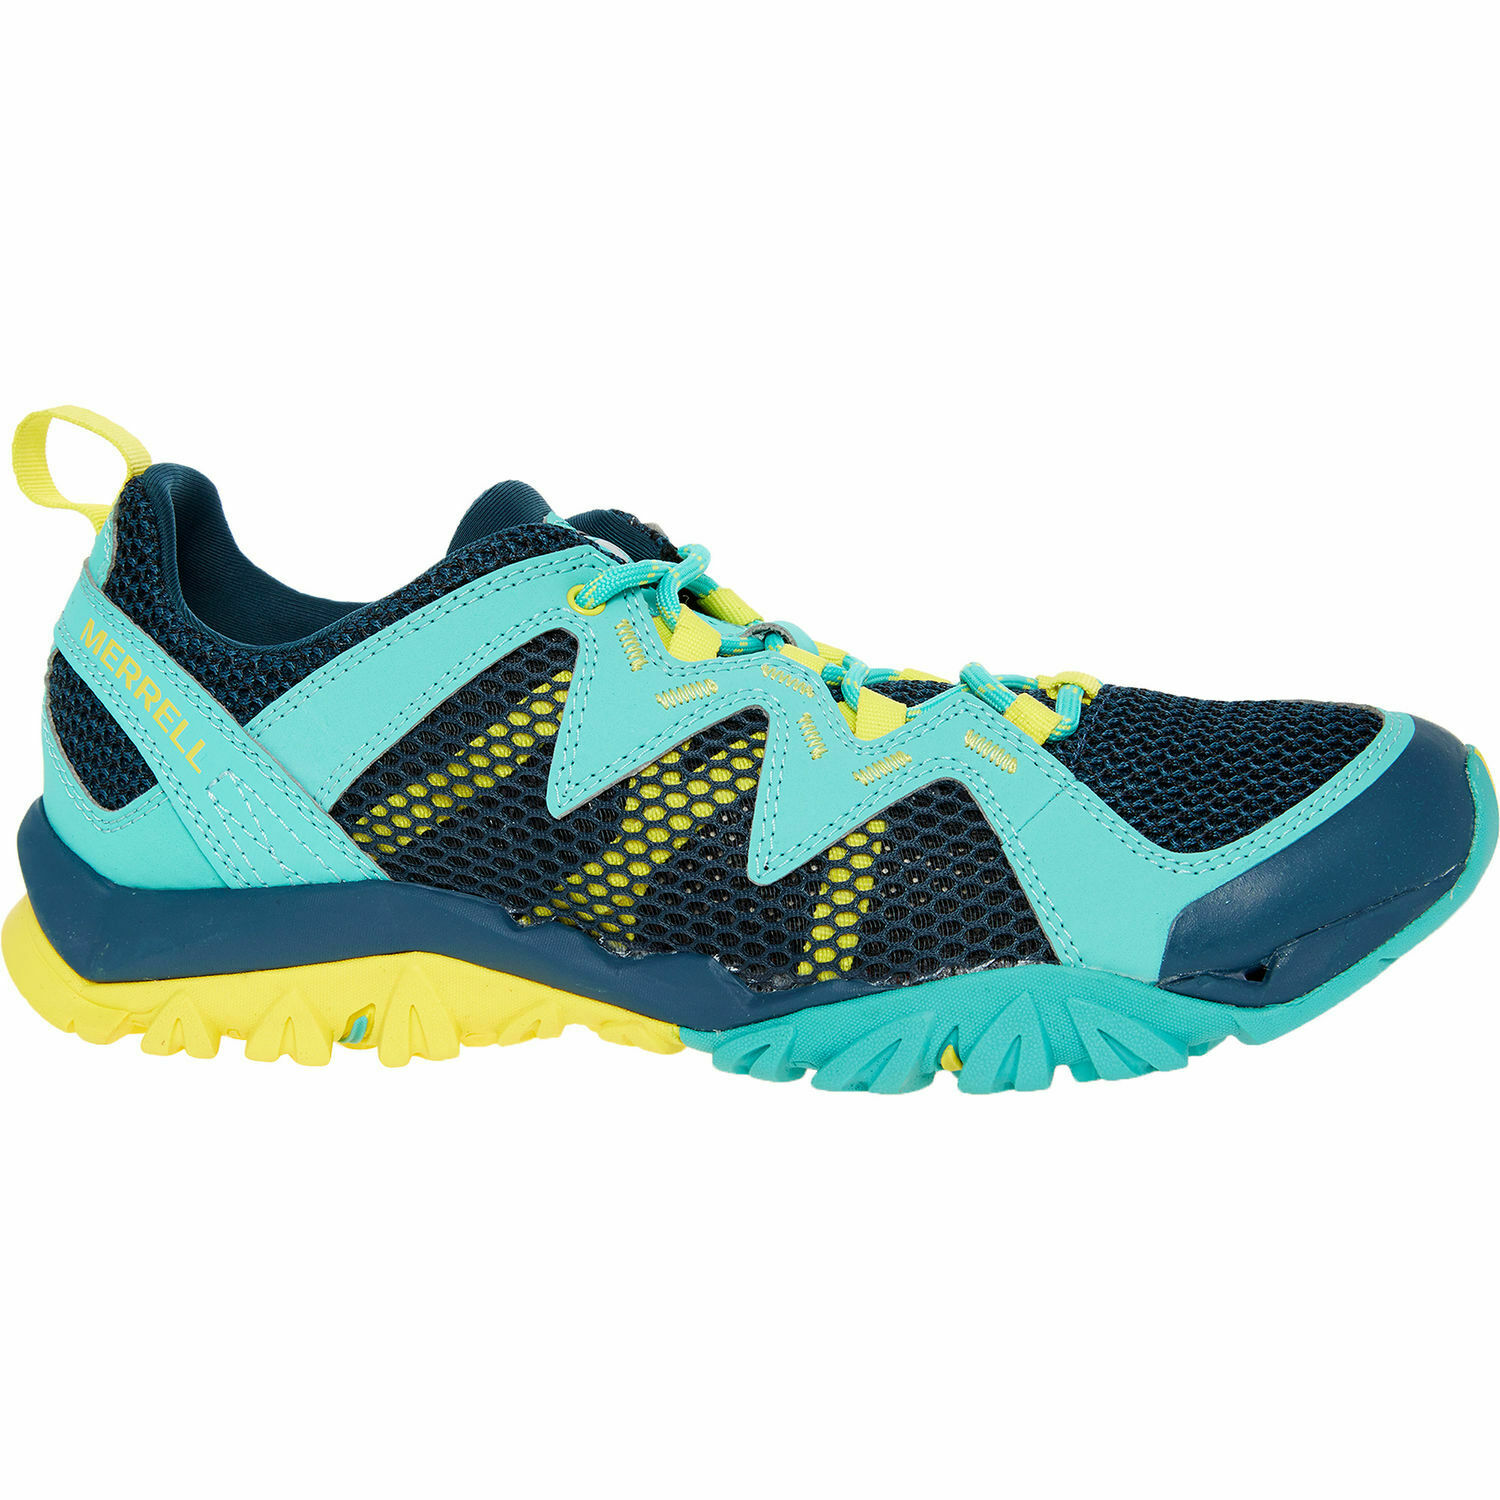 New MERRELL Turquoise Tetrex Rapid Crest breathable Walking shoes Size UK 5   38